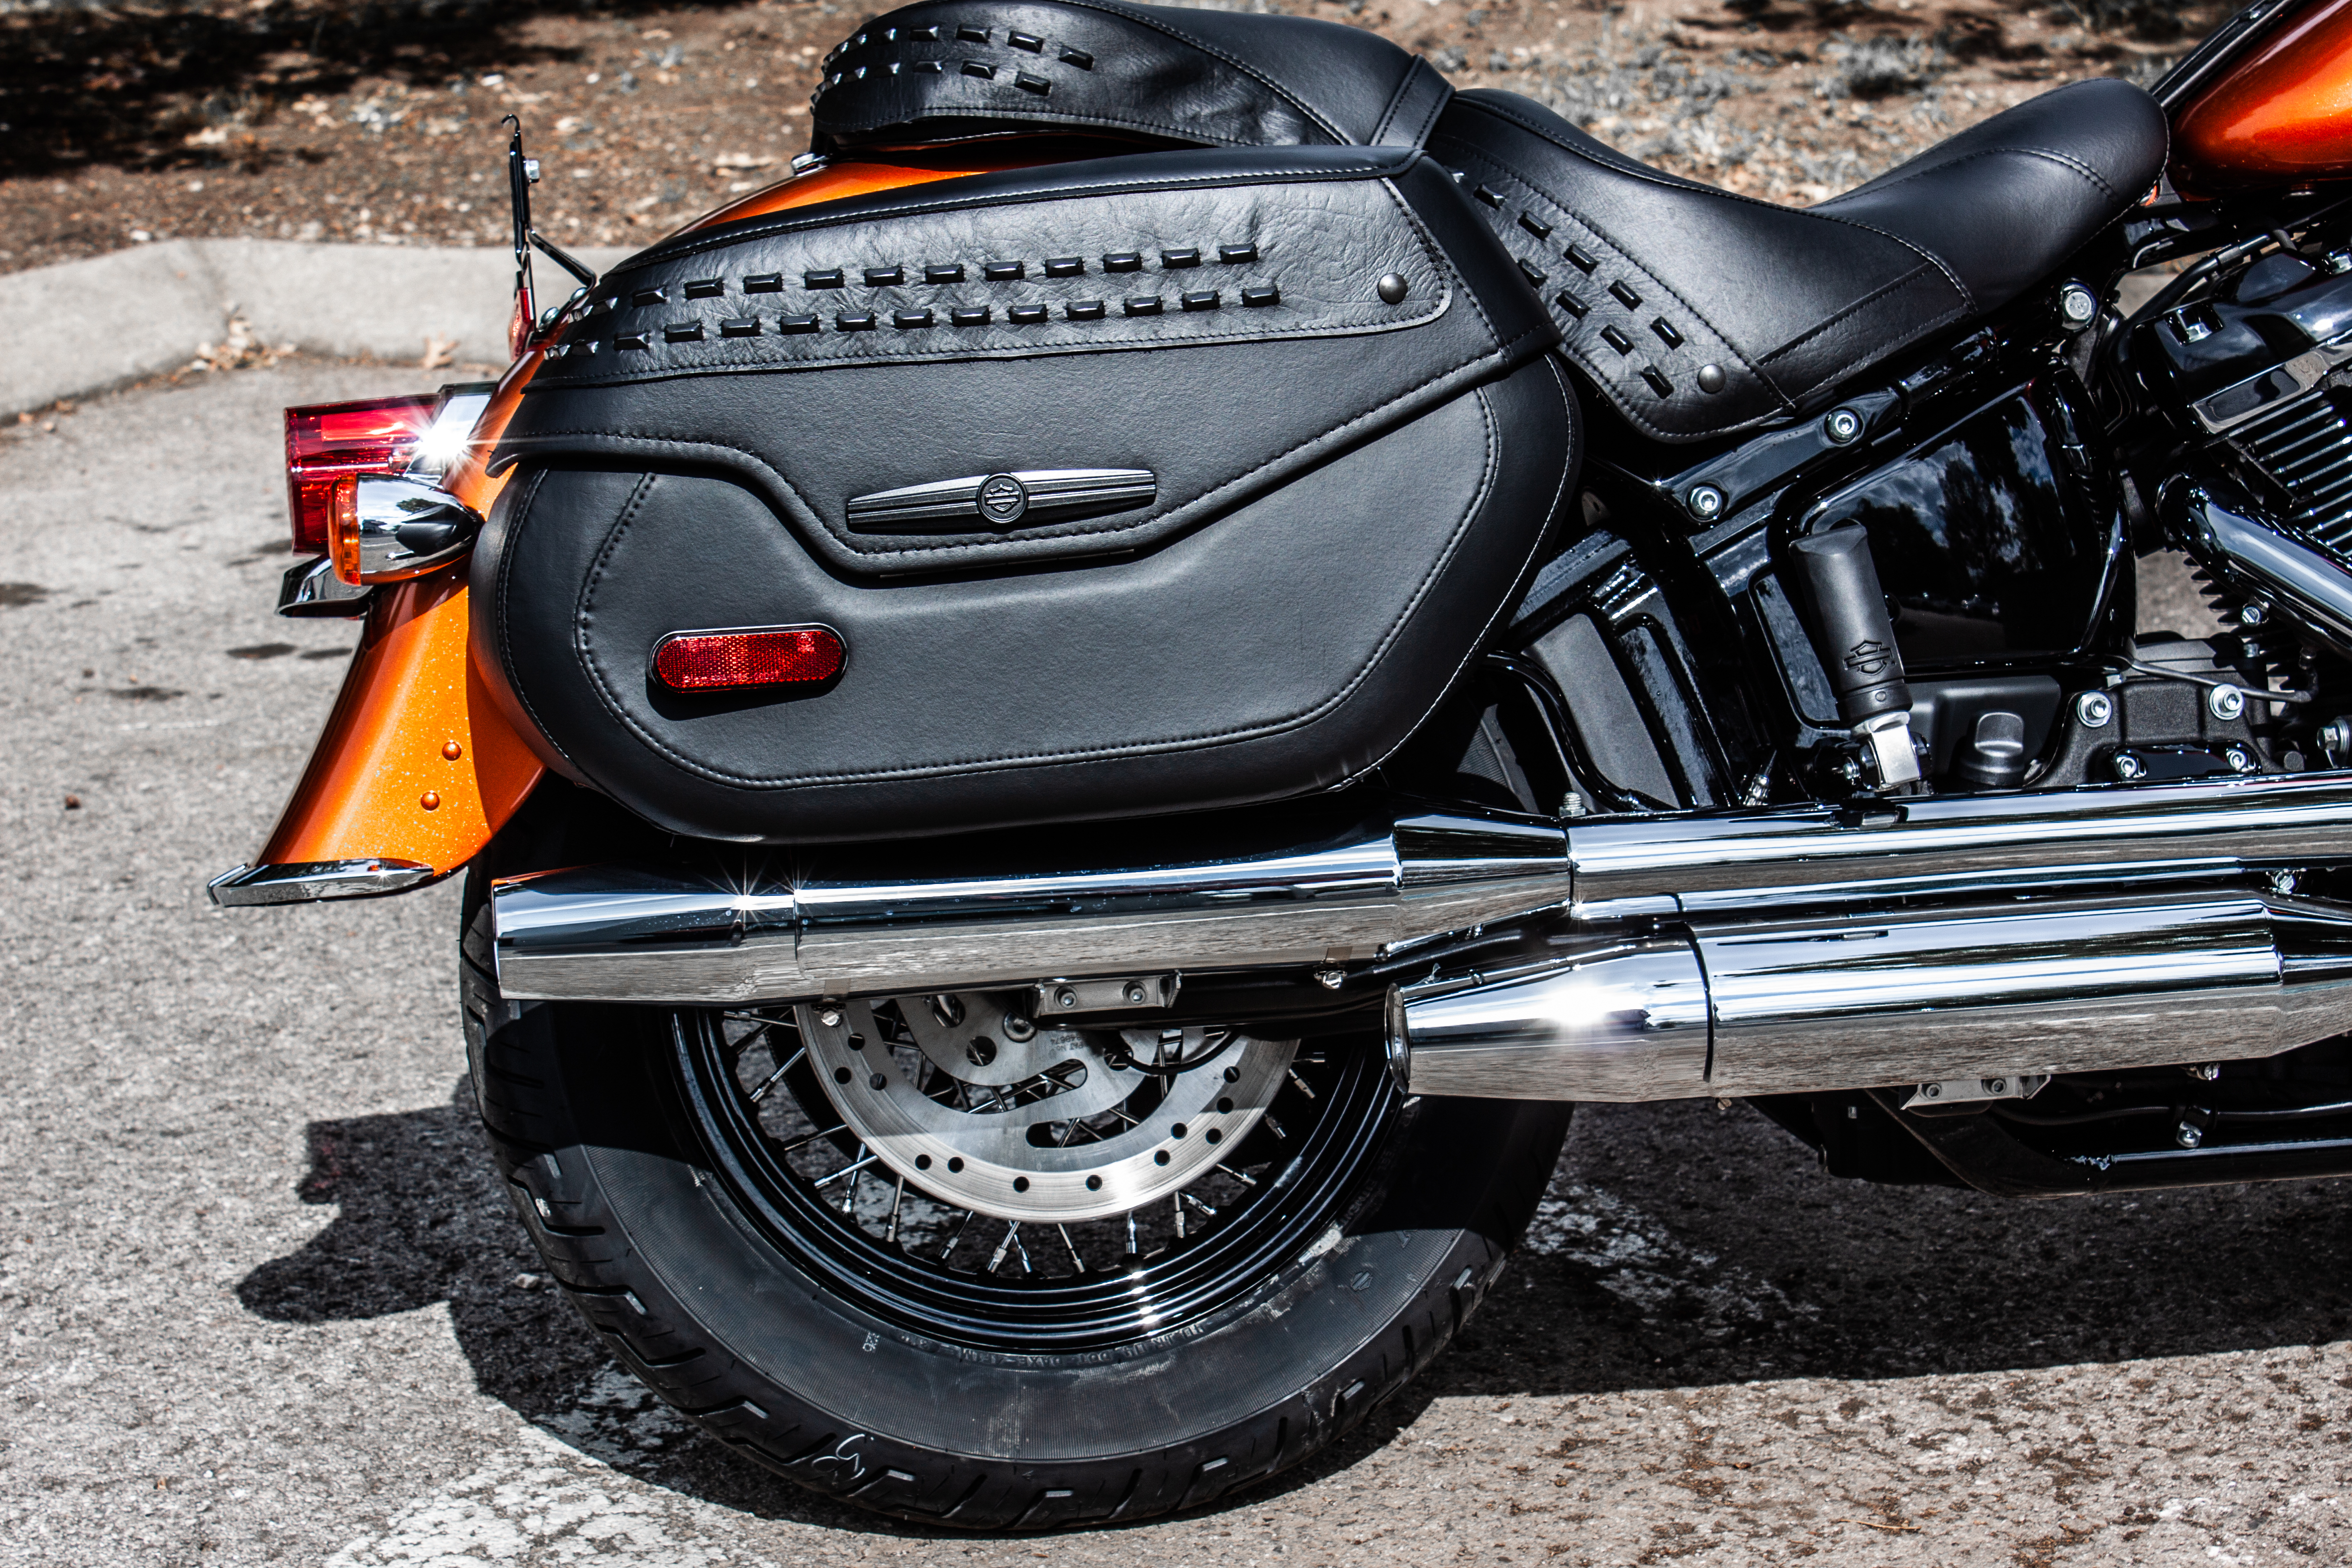 New 2020 Harley-Davidson Heritage Classic 114